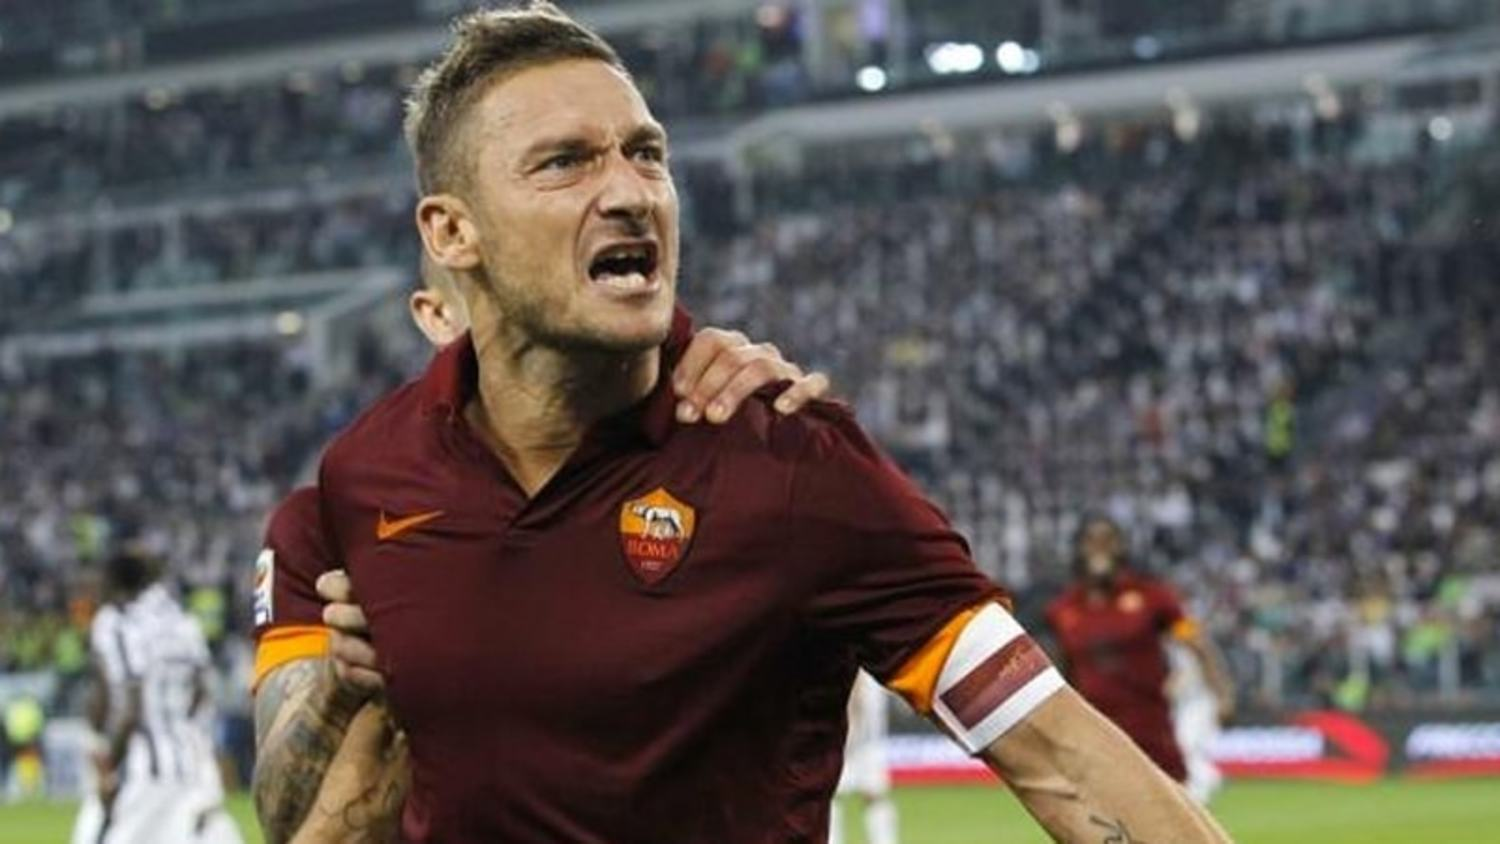 Totti receives standing ovation at the Bernabéu | #UCLAwayDays